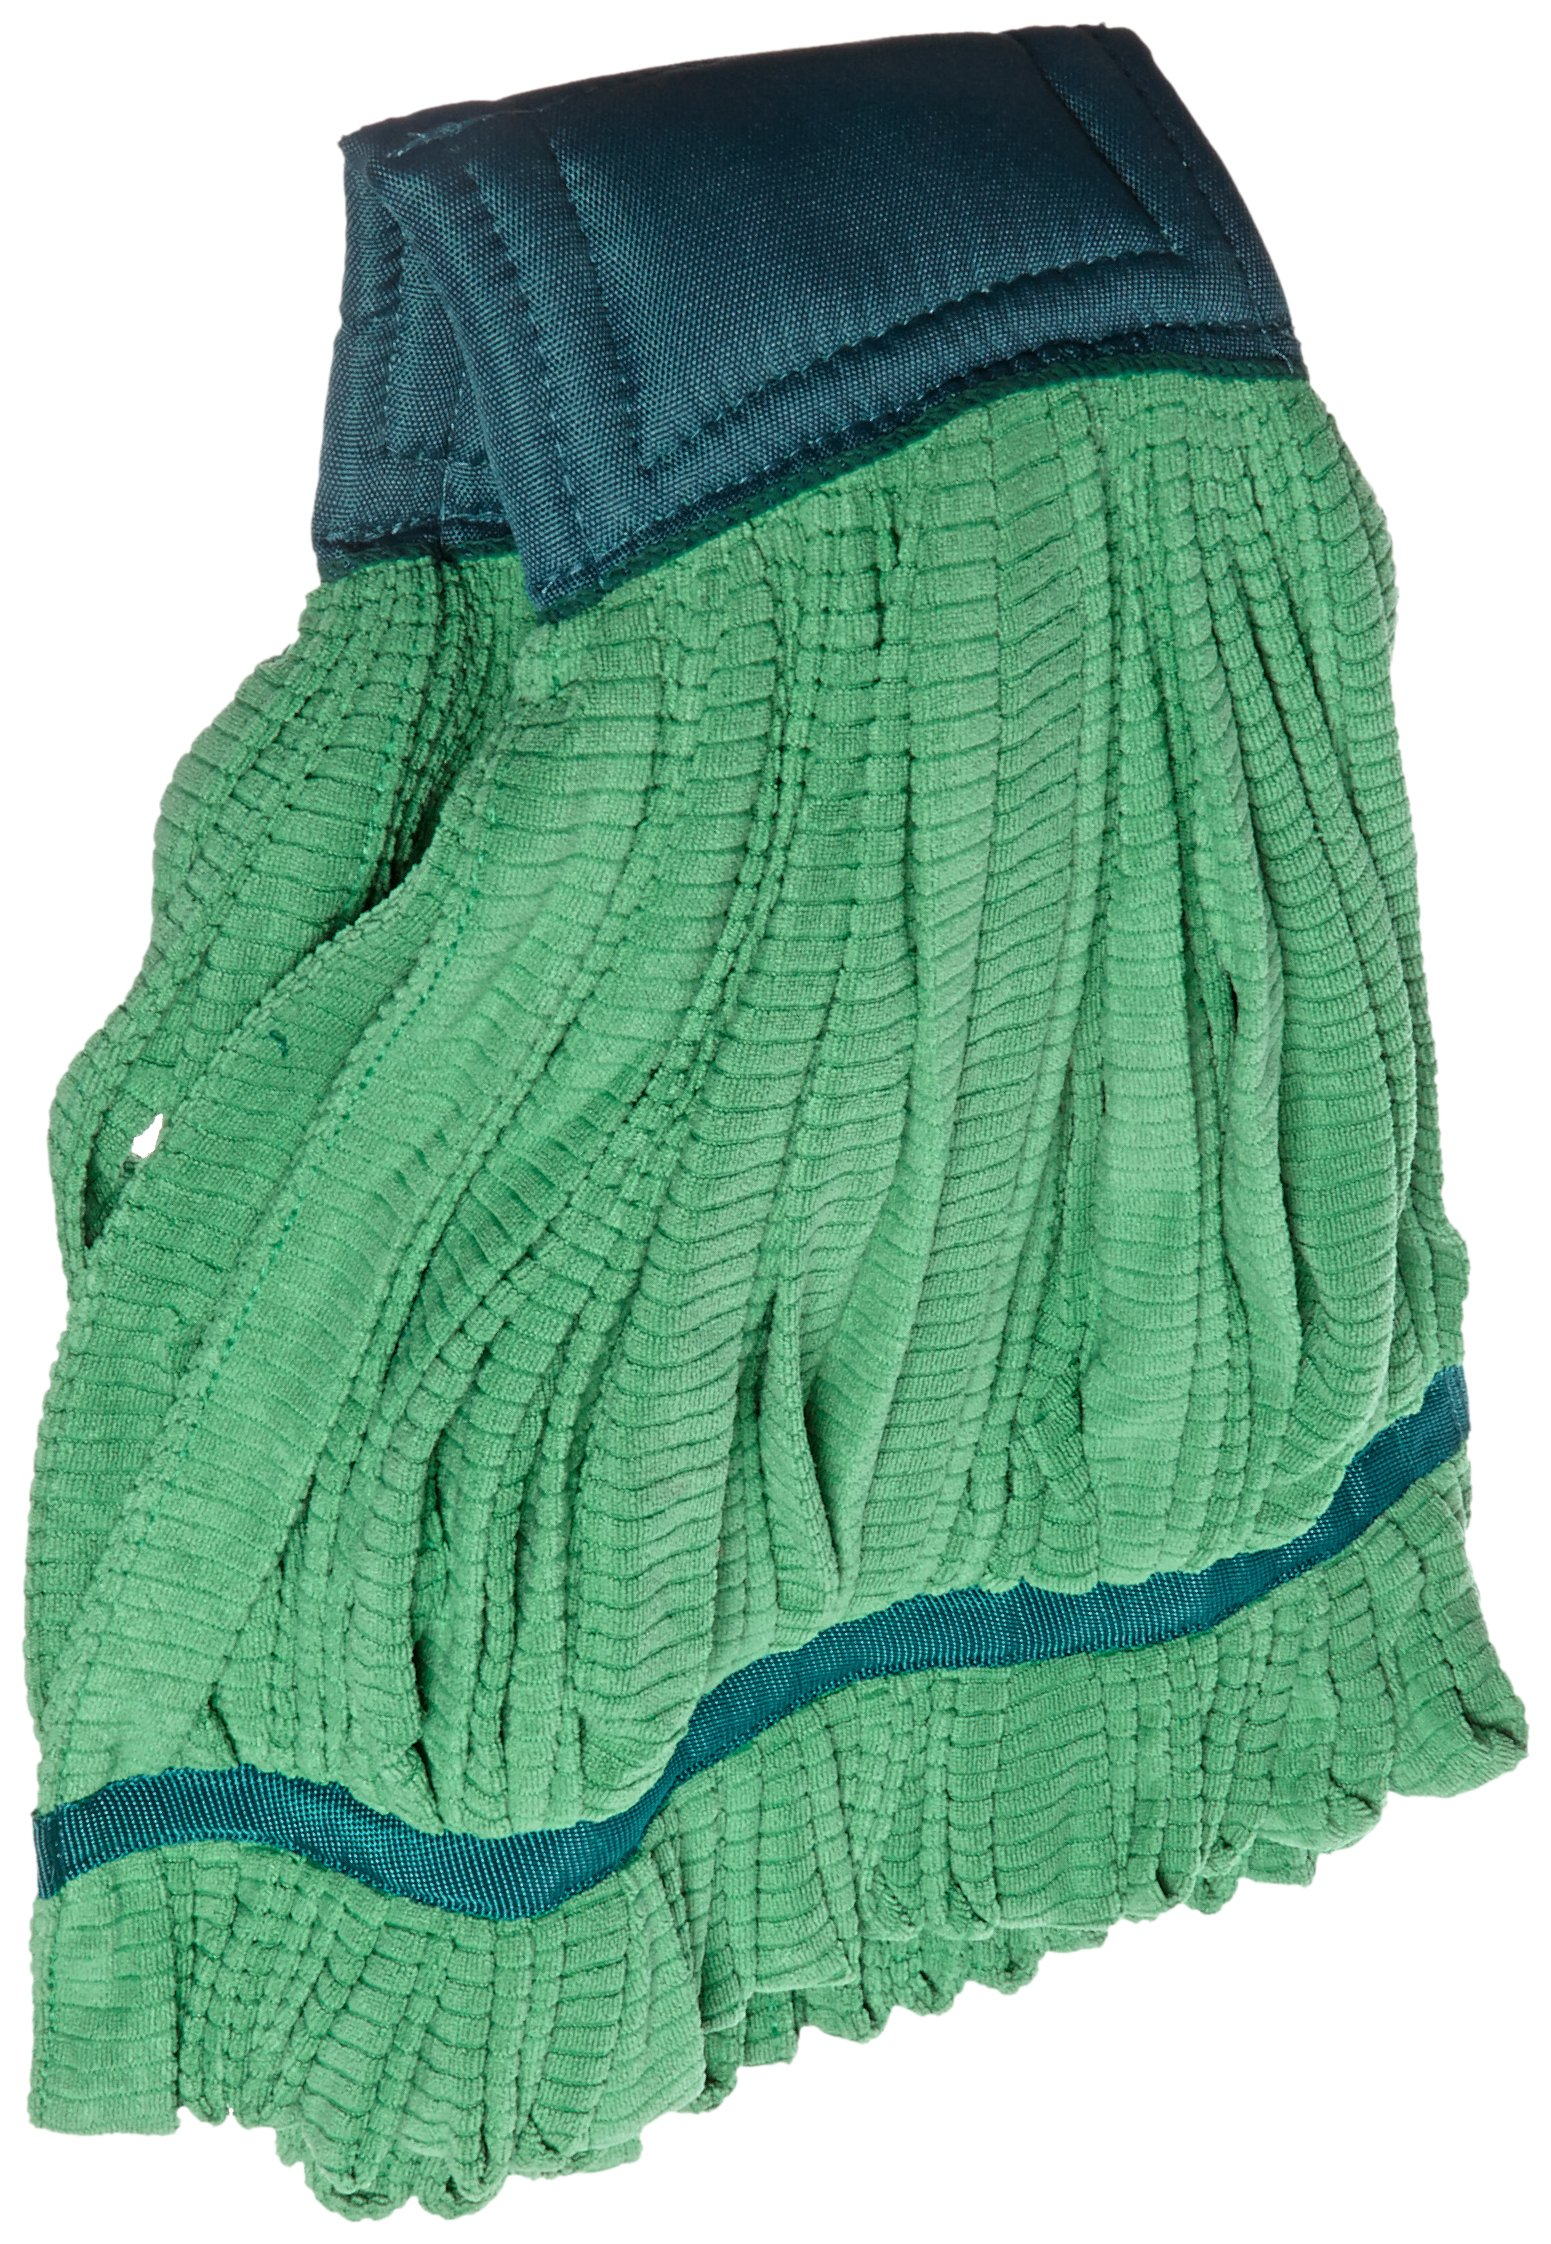 Impact LF0022 Microfiber Tube Wet Mop with Canvas Headband, X-Large, Green (Case of 12)